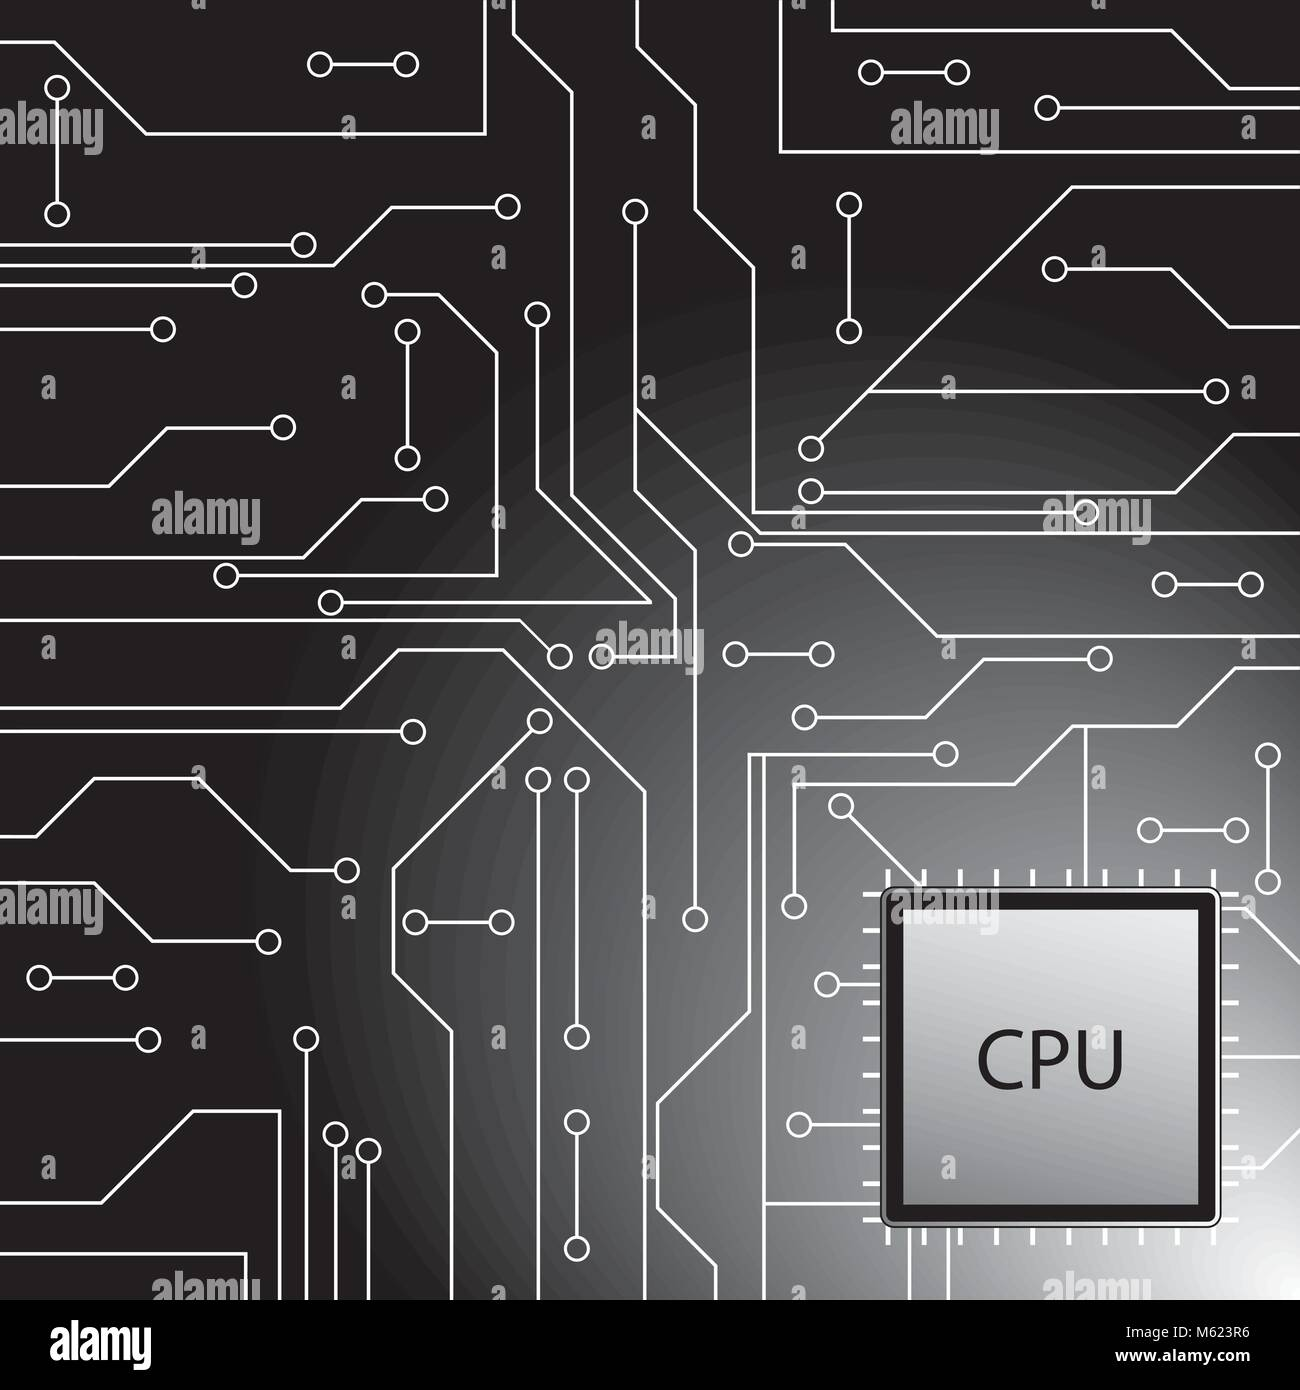 Microprocessor Stock Vector Images Alamy Circuit Board Illustration Royalty Free Image Cpu Microchip